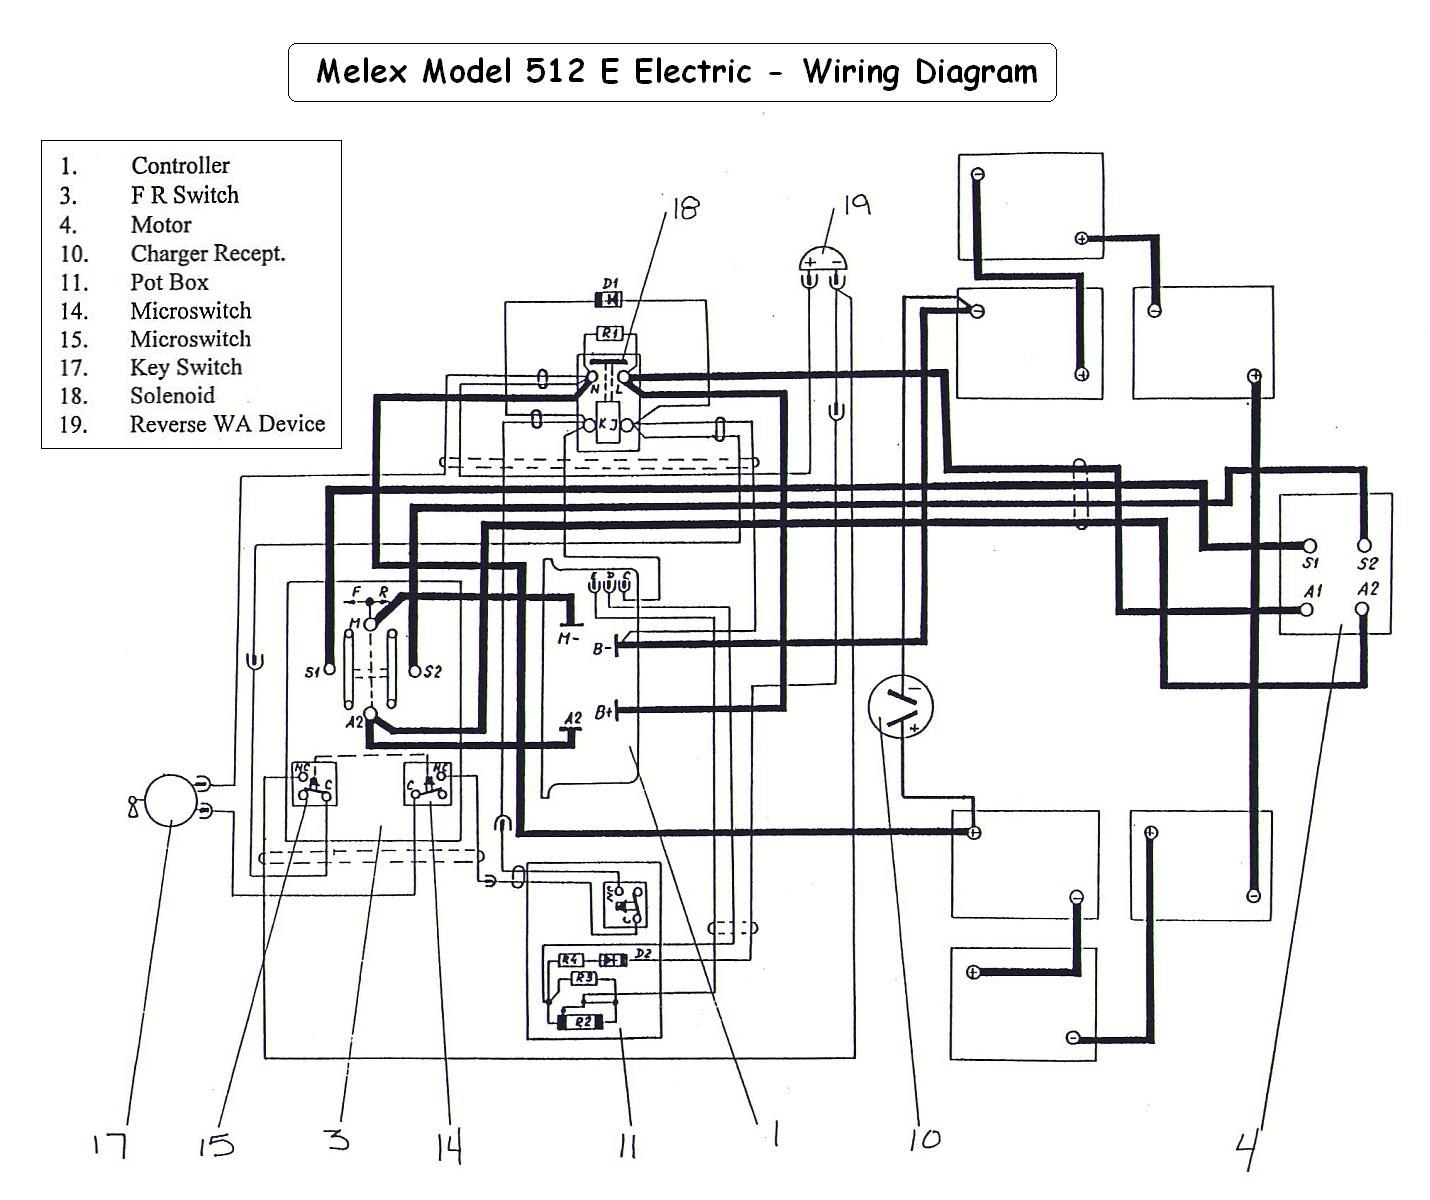 taylor wiring diagram with Gallery on 5339  pletely reconditioned ih cub 154 lo   boy tractor with mod   3160 60  mow deck in addition Challenger Boiler System Piping For Install 2 additionally How Electric Kettles Work moreover Ic300 together with Standard 3 Pin 2 Wire Boat Trolling Motor Plug.